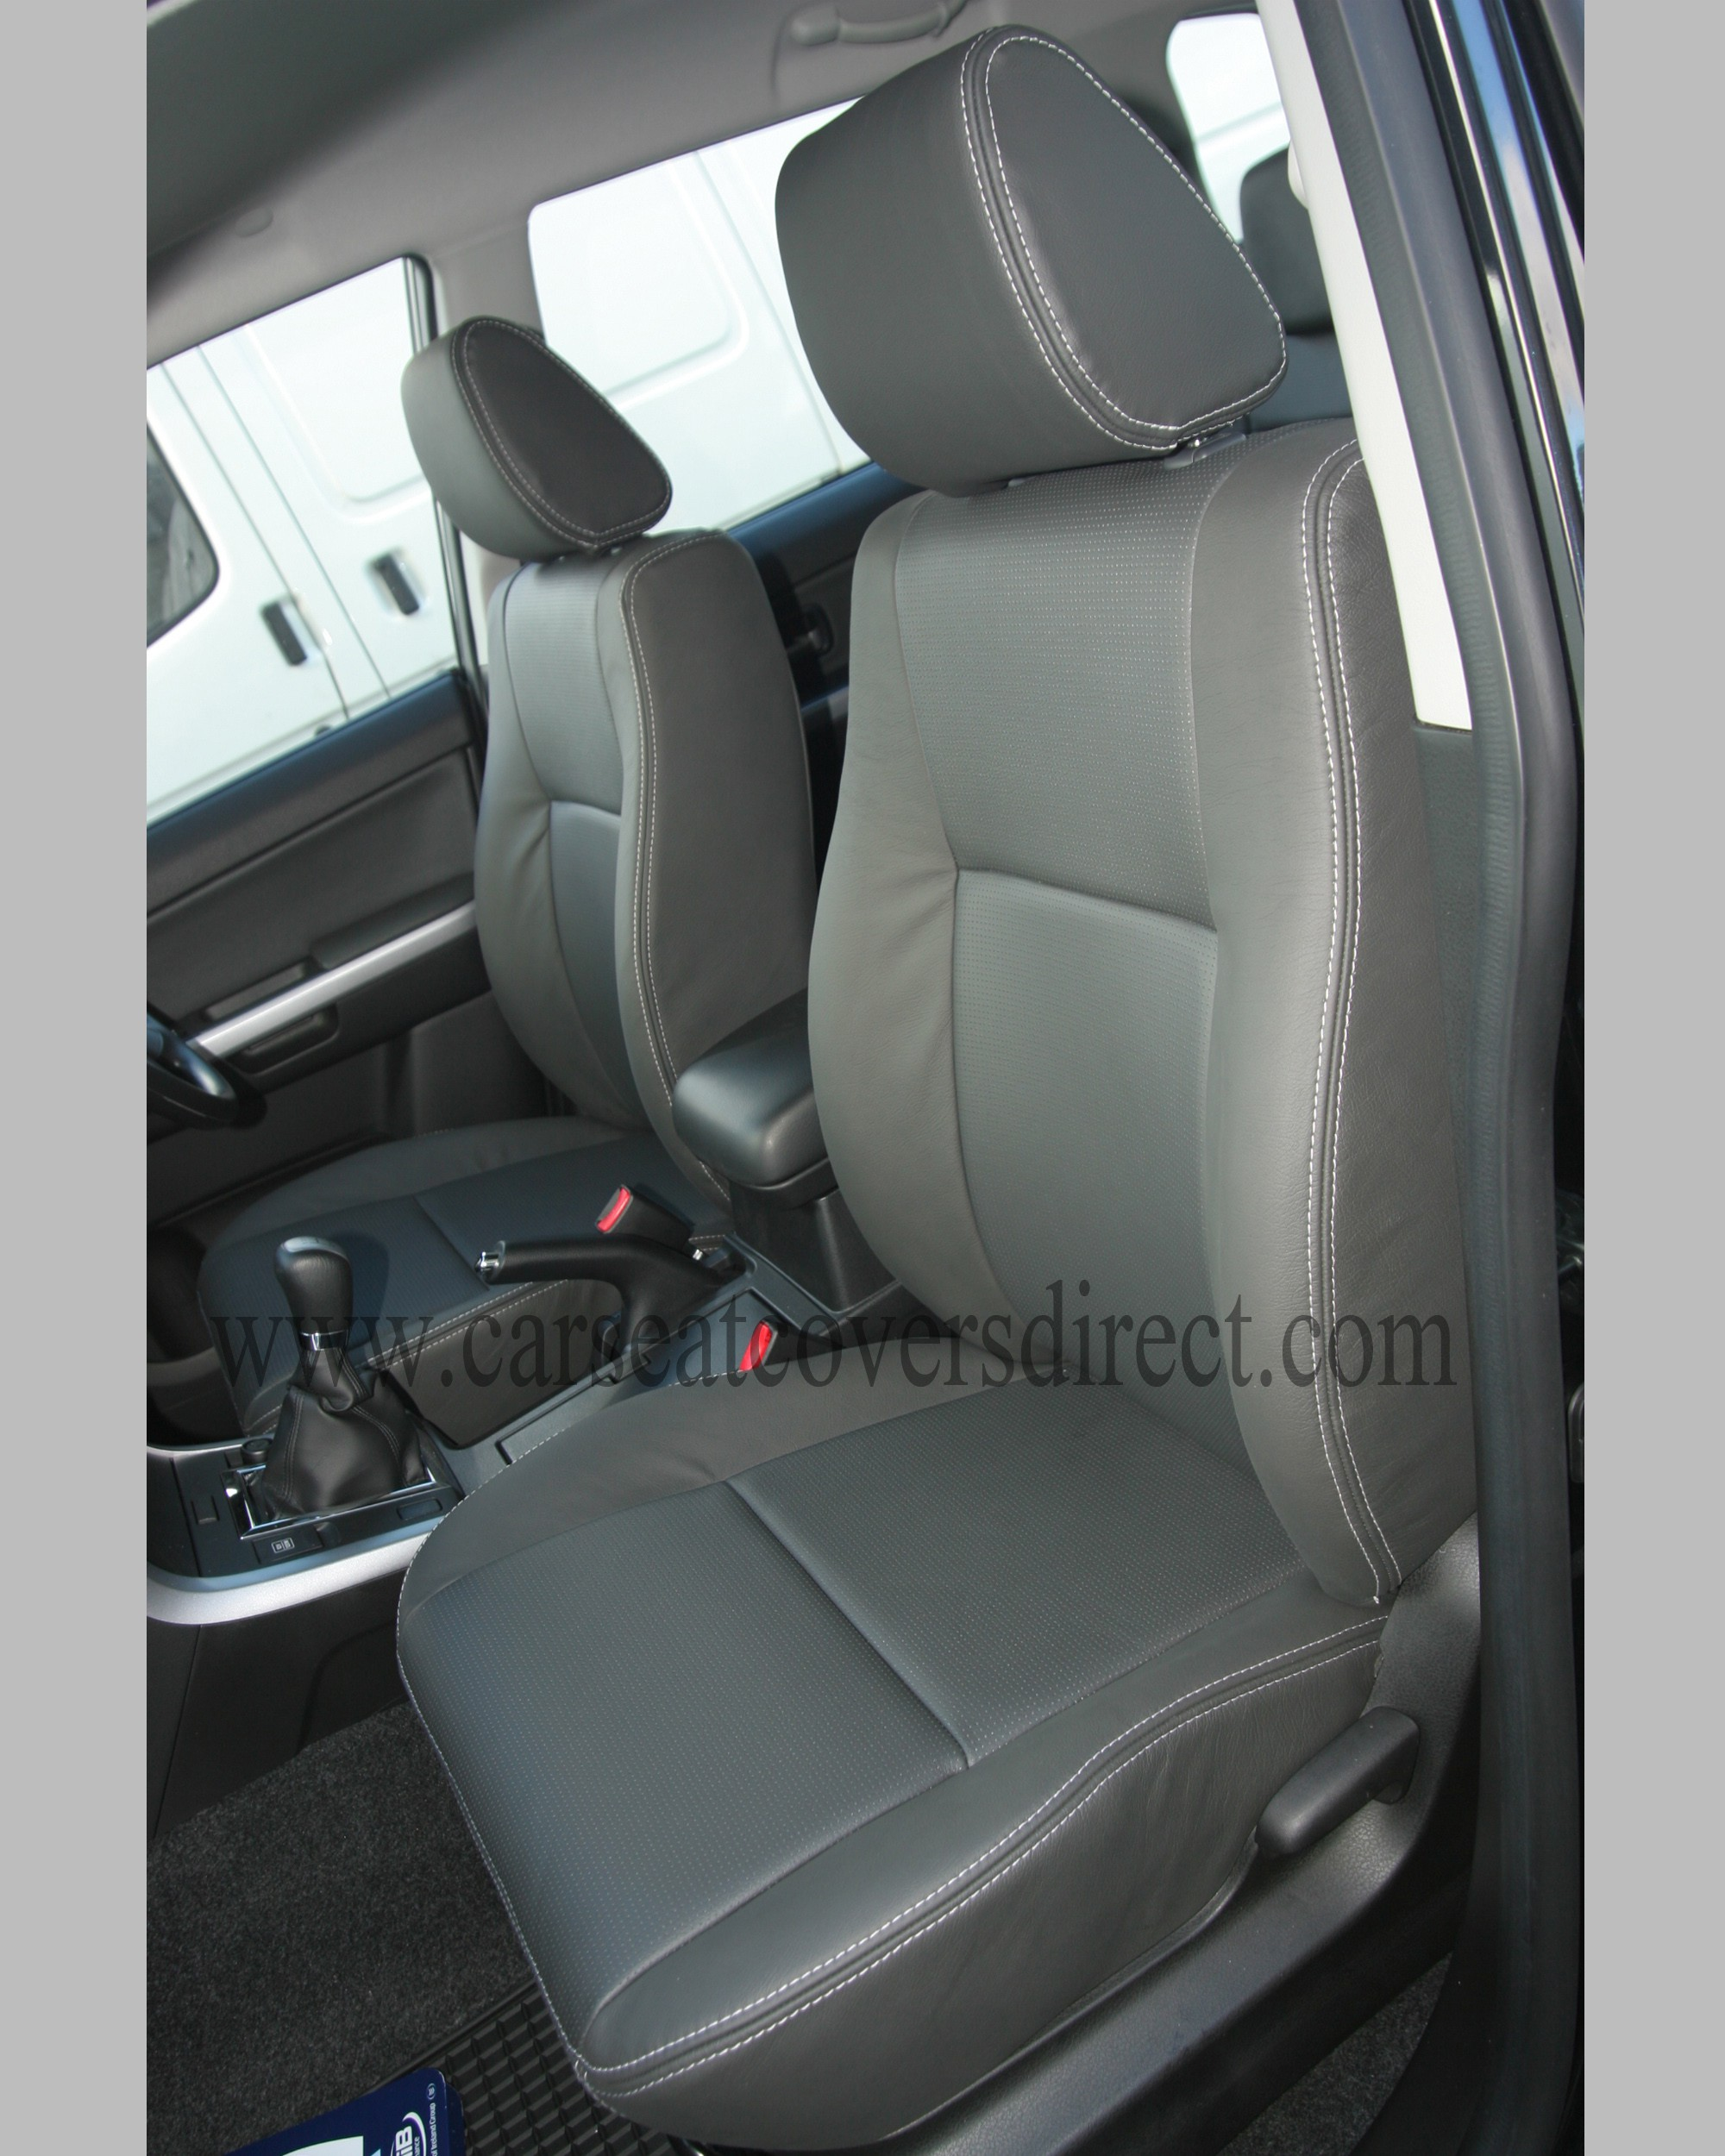 Suzuki Grand Vitara Leather Retrim (2005-2017)